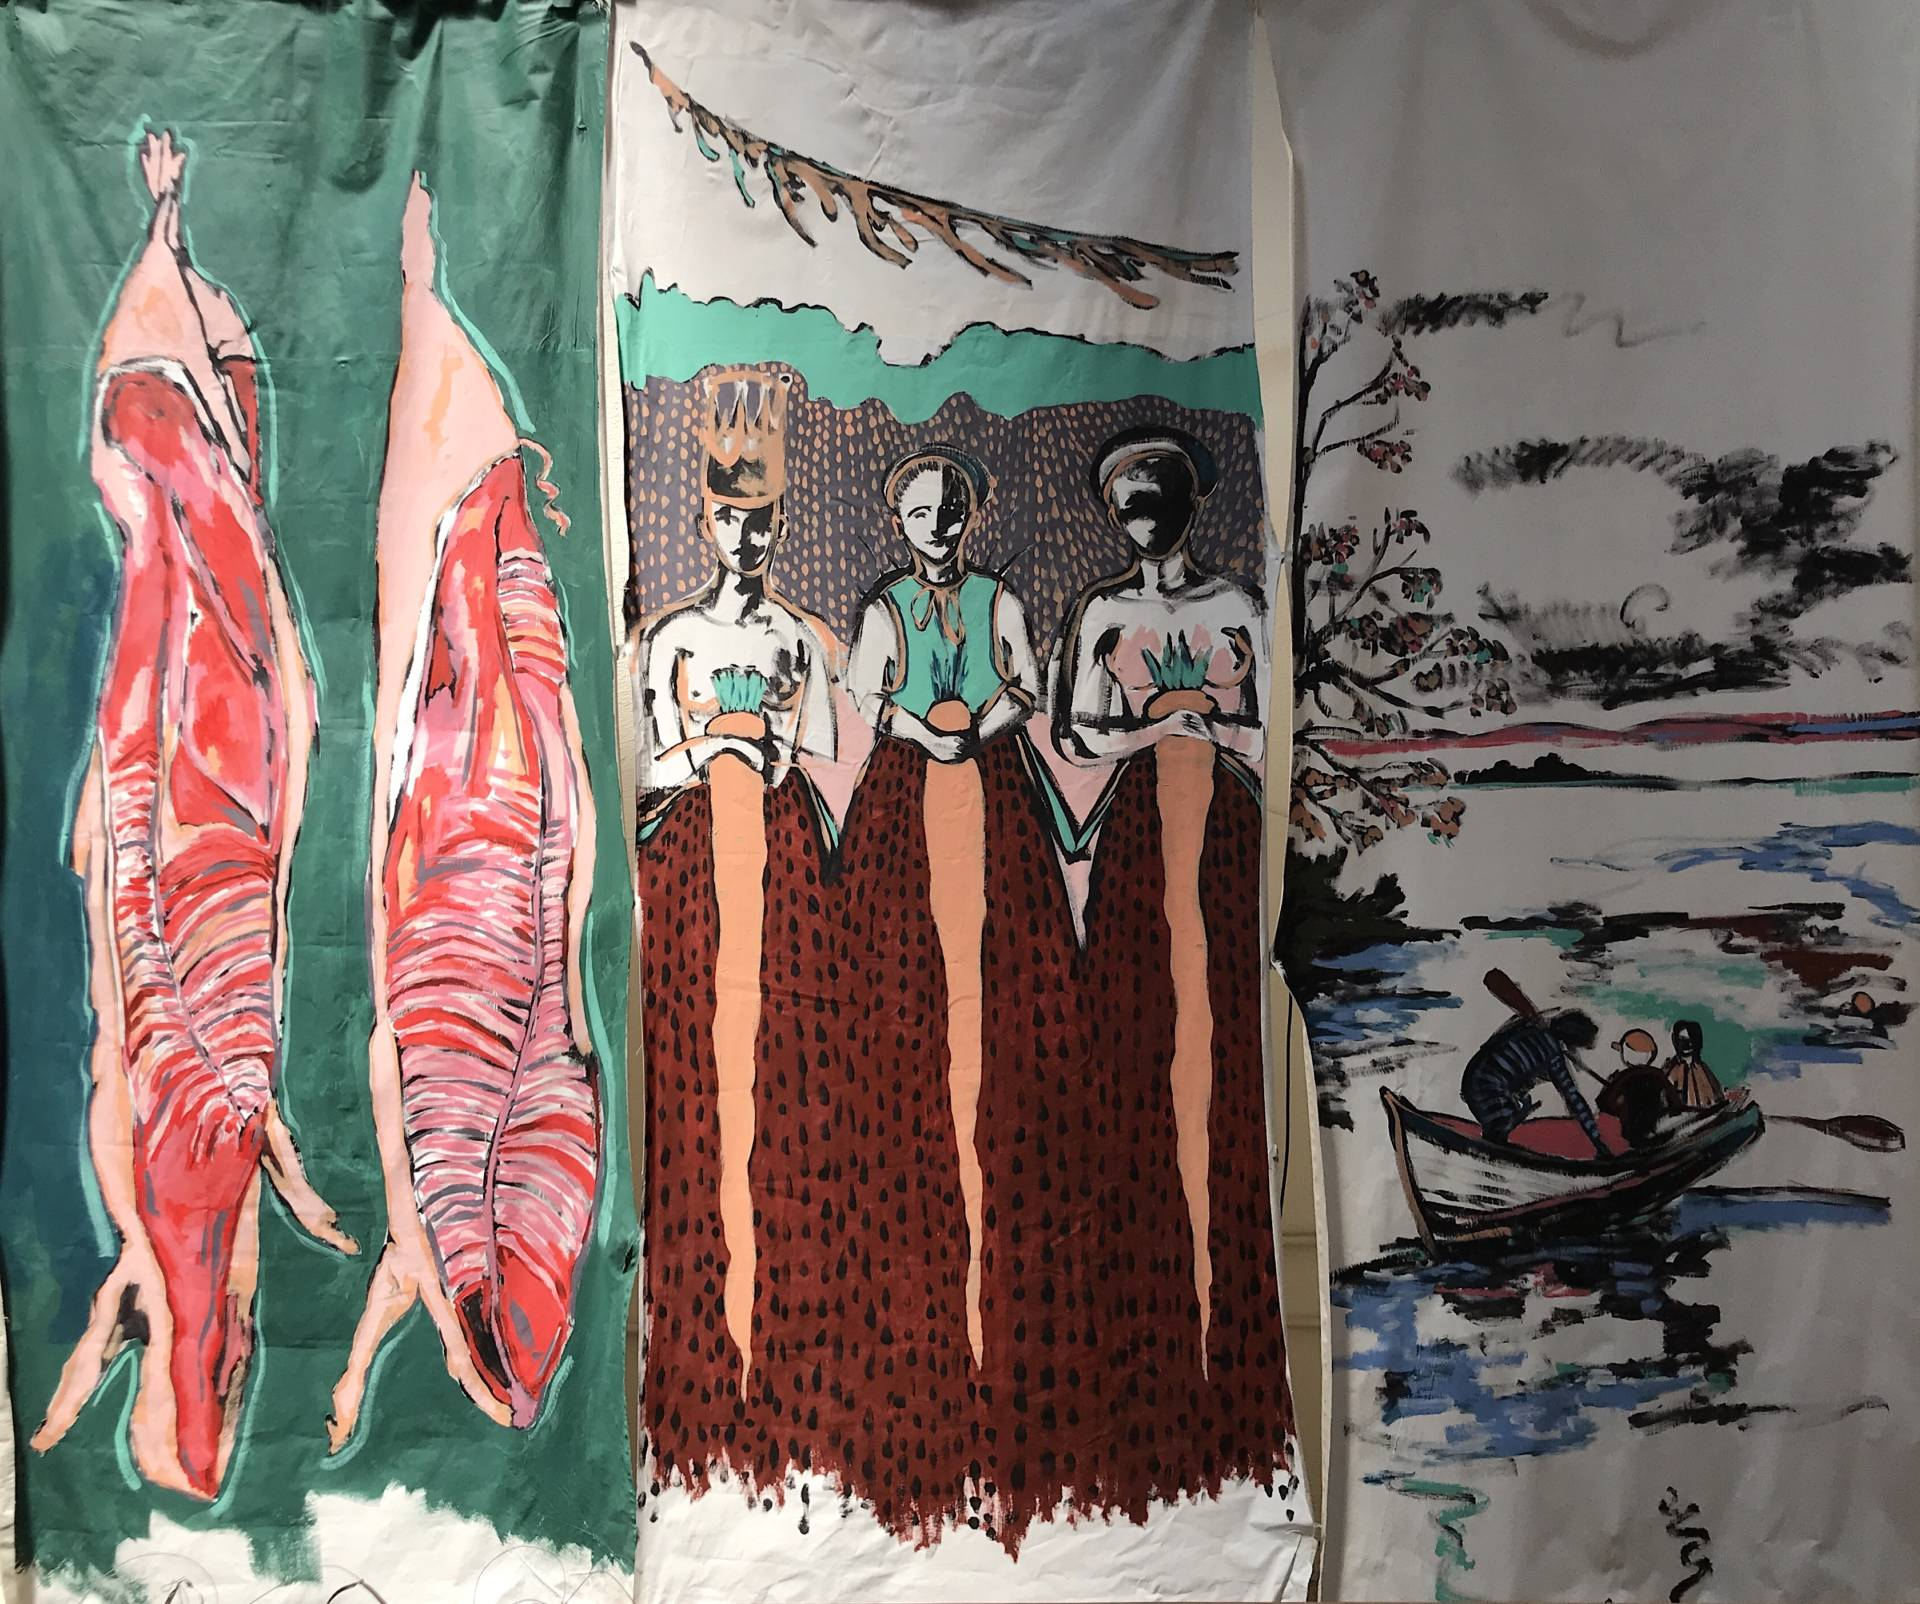 Artwork by Isis Hockenos will practically come to life at the next Nightfishing event at The Midway.